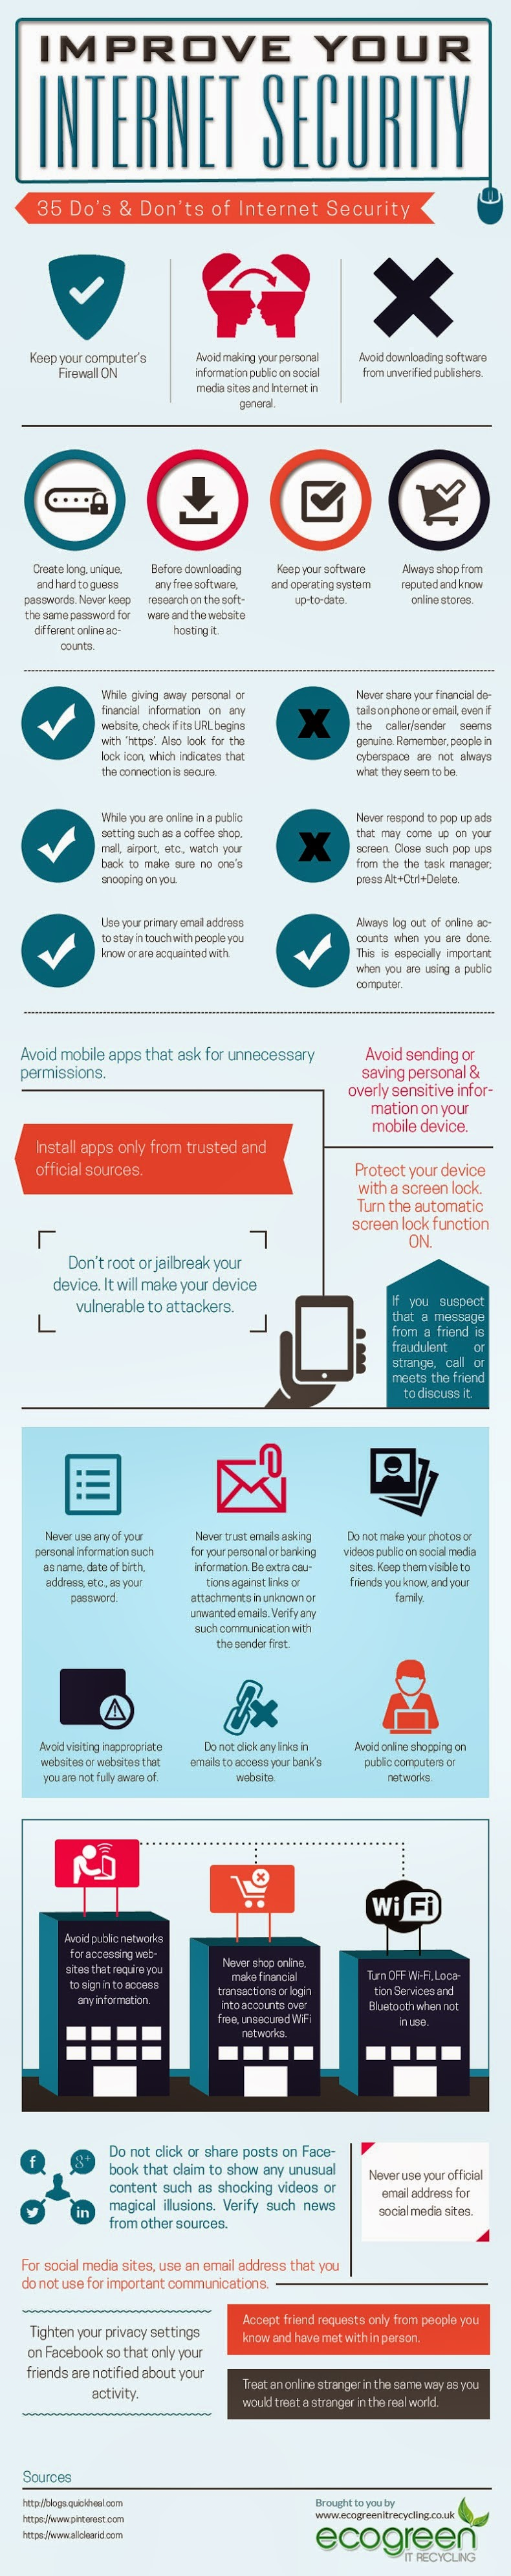 Image of Improve Your Internet Security the Infographic